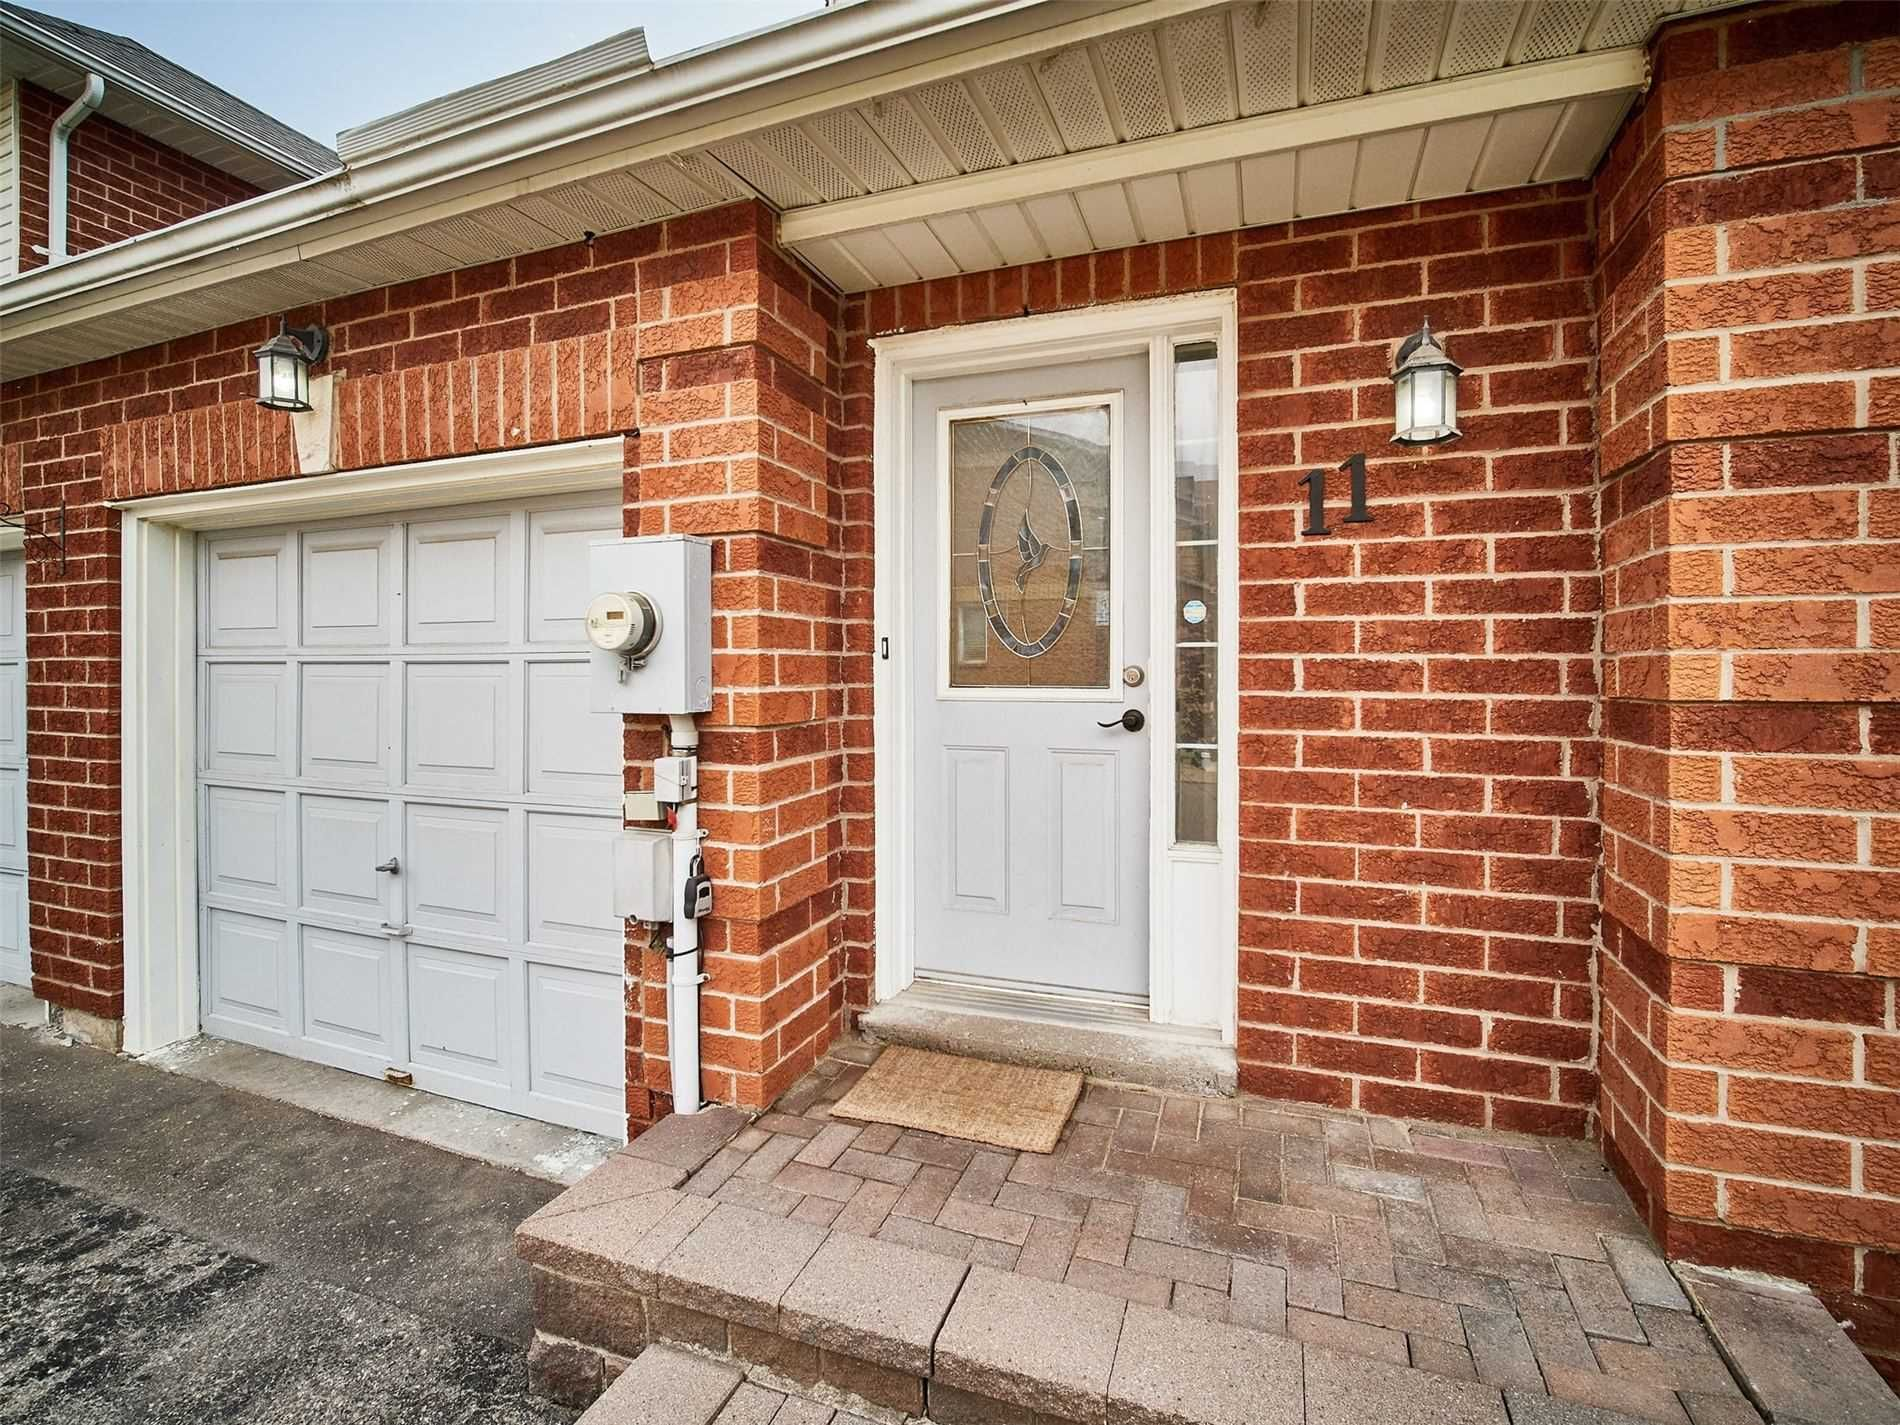 811 Wilson Rd N, unit 11 for sale in Toronto - image #2